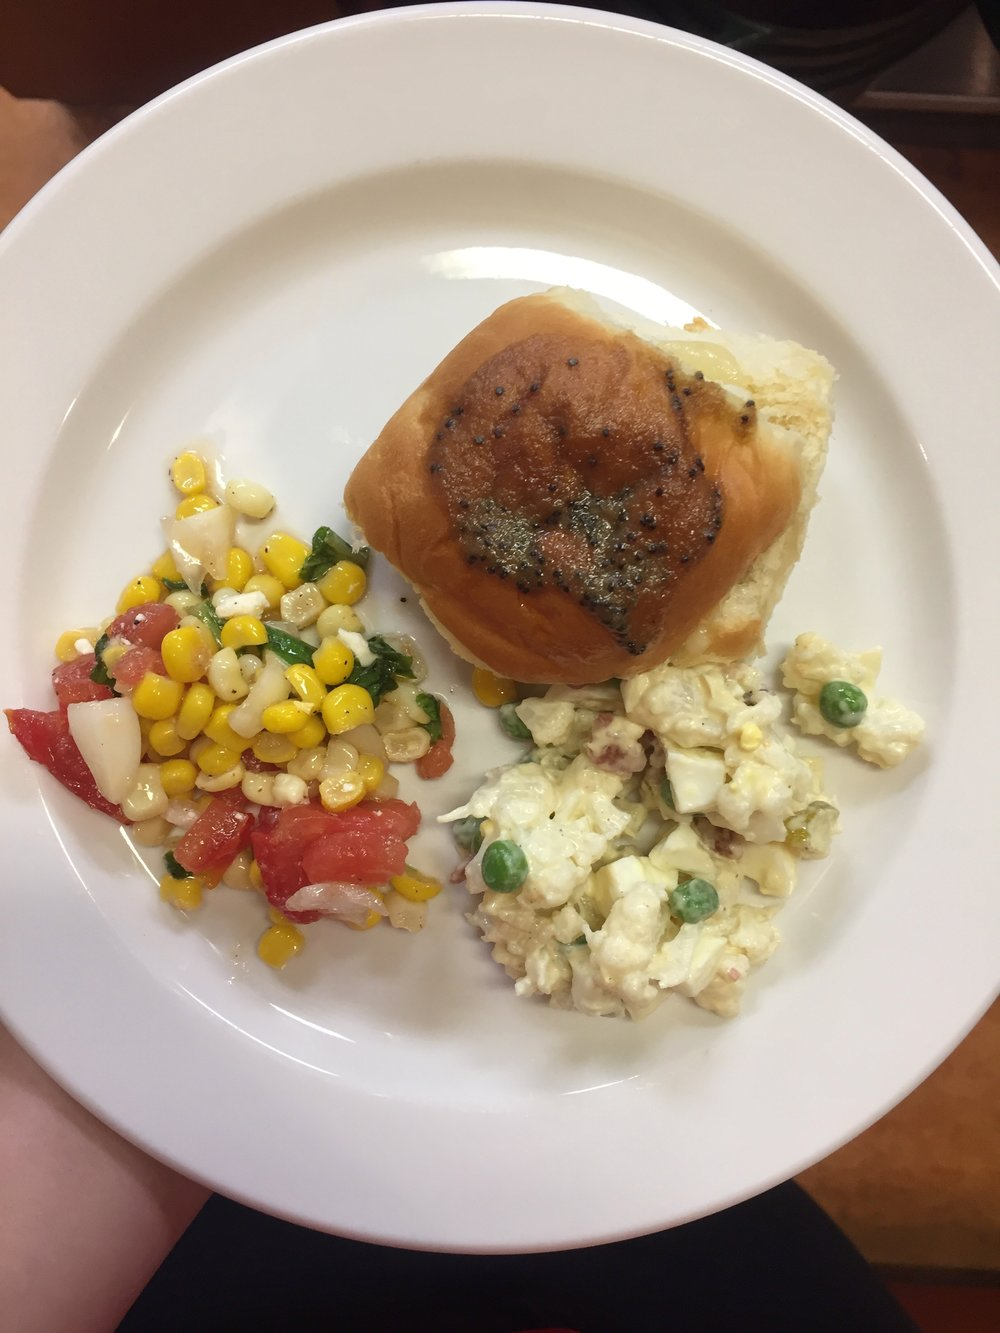 sandwich, corn, and potato salad